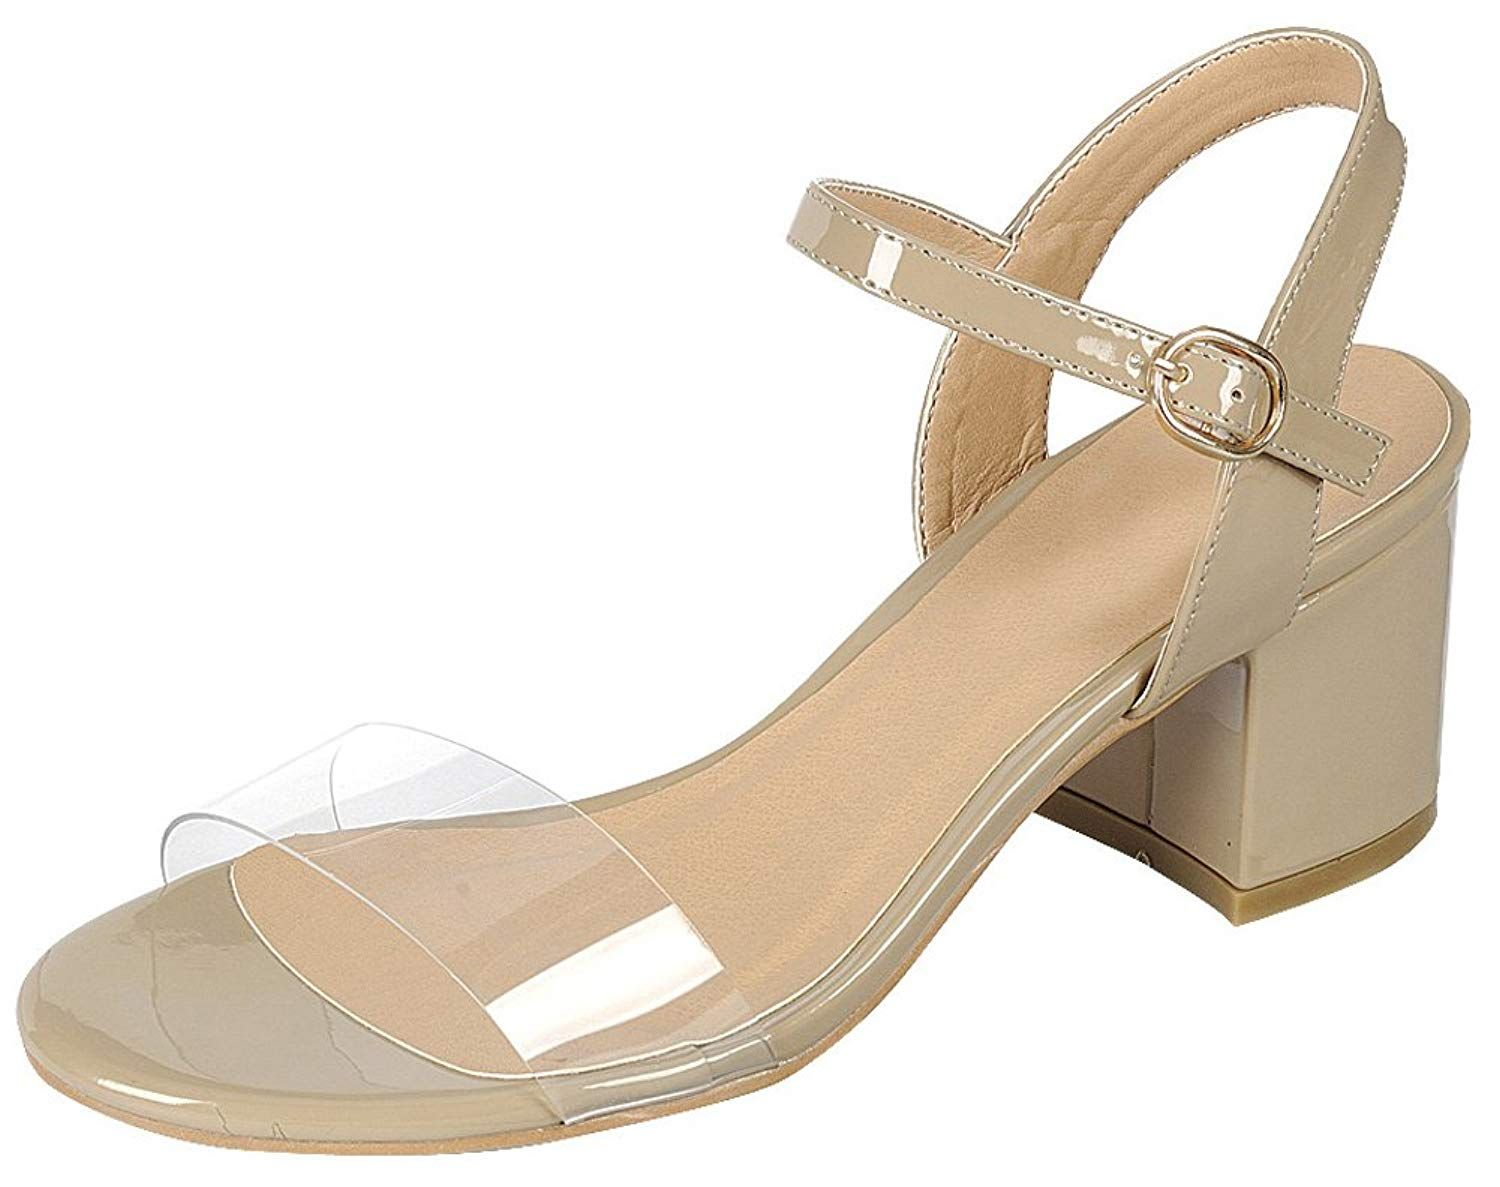 970a2c8c2c8 Cambridge Select Women s Open Toe Single Band Clear See Through Buckled  Ankle Chunky Block Mid Heel